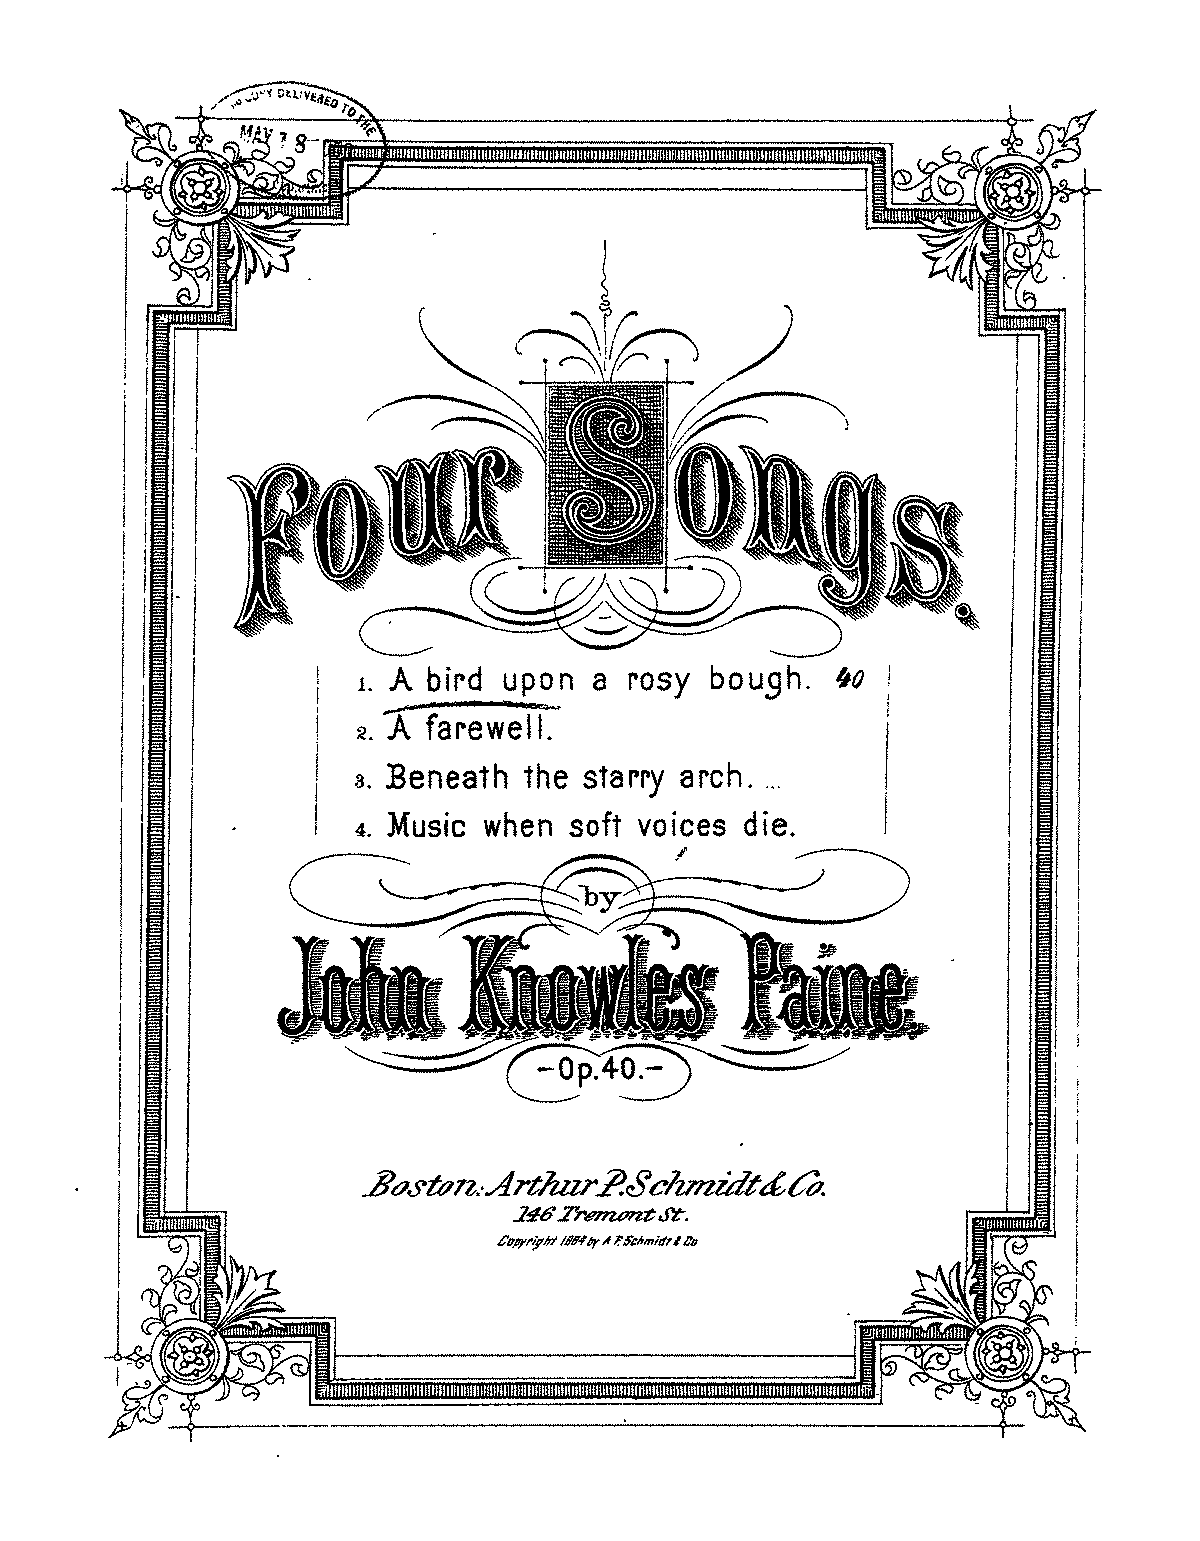 PMLP139328-Paine 4 Songs Op.40 No.1 A Bird Upon A Rosy Bough.pdf